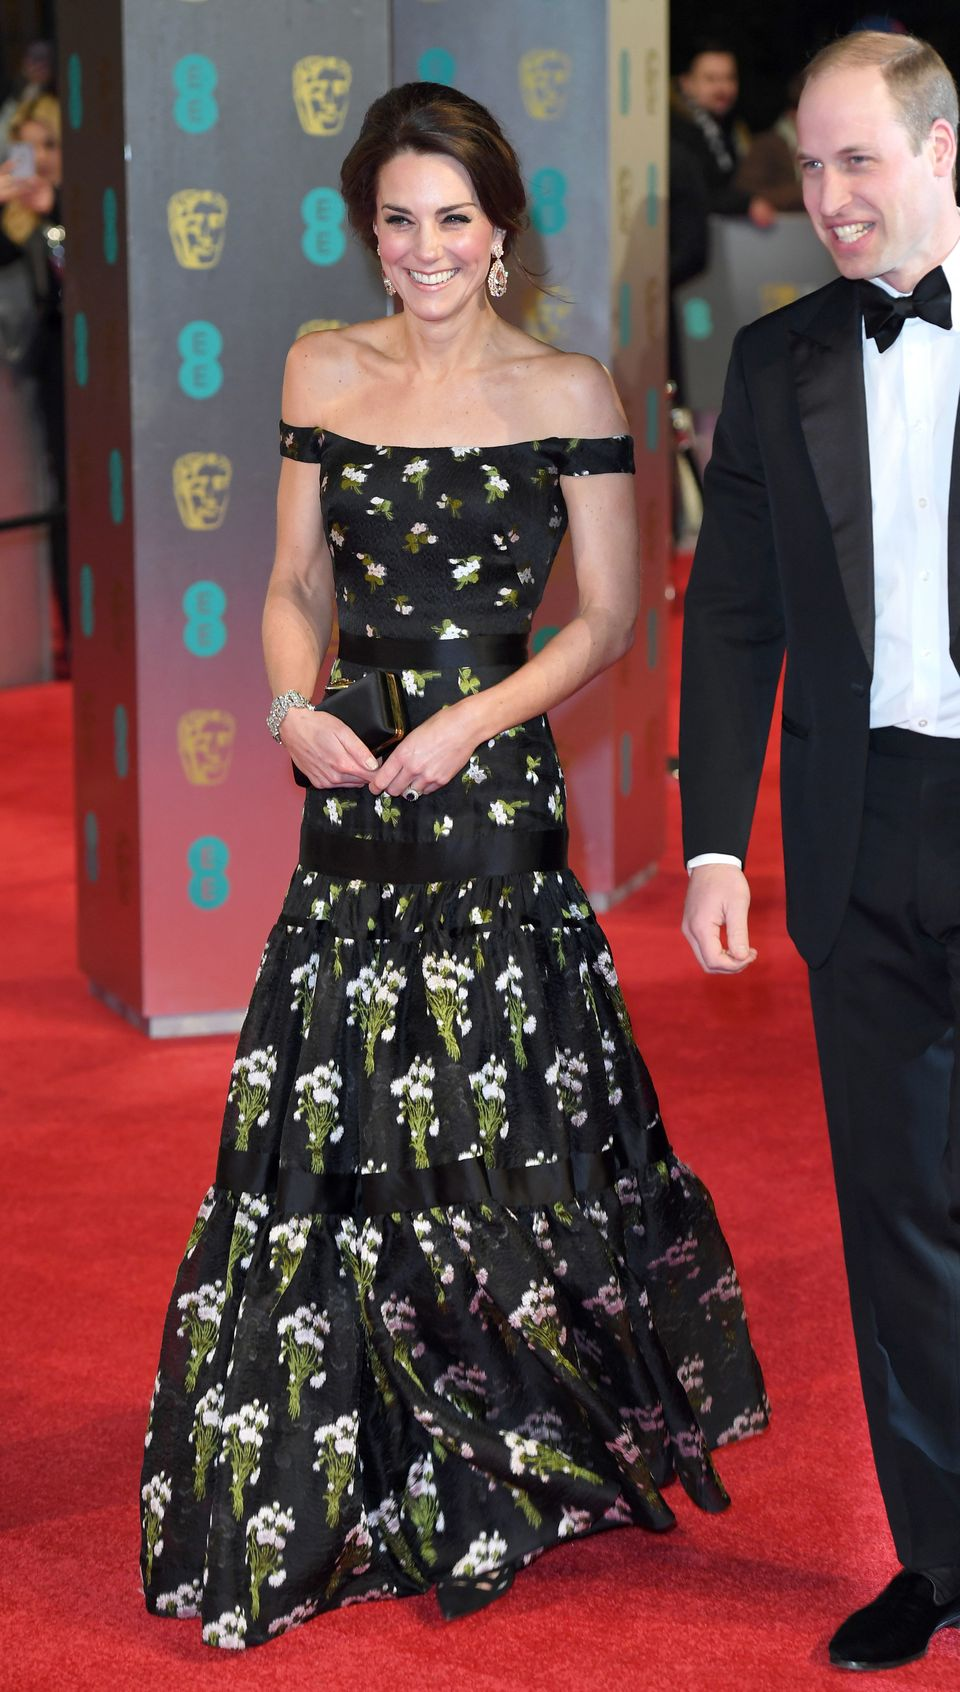 Duchess of Cambridge attends the Bafta awards at the Royal Albert Hall on 12 February